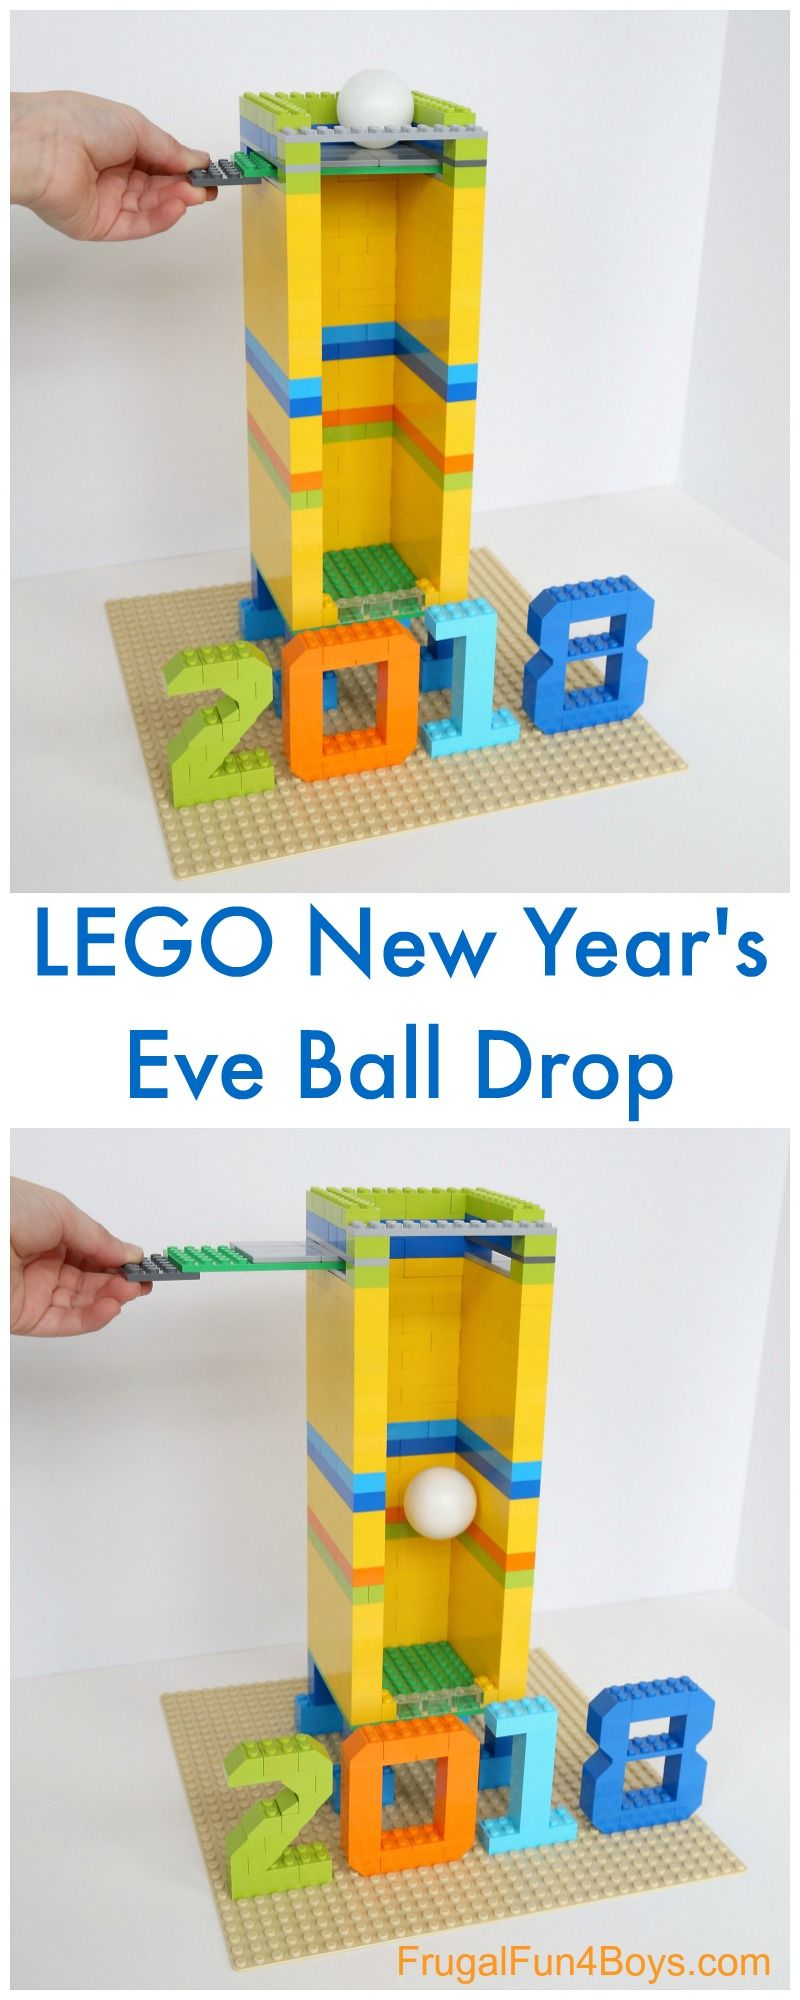 Build A New Years Eve Ball Drop With LEGO Bricks Kids Building - Clever print ads from lego show children building their own future